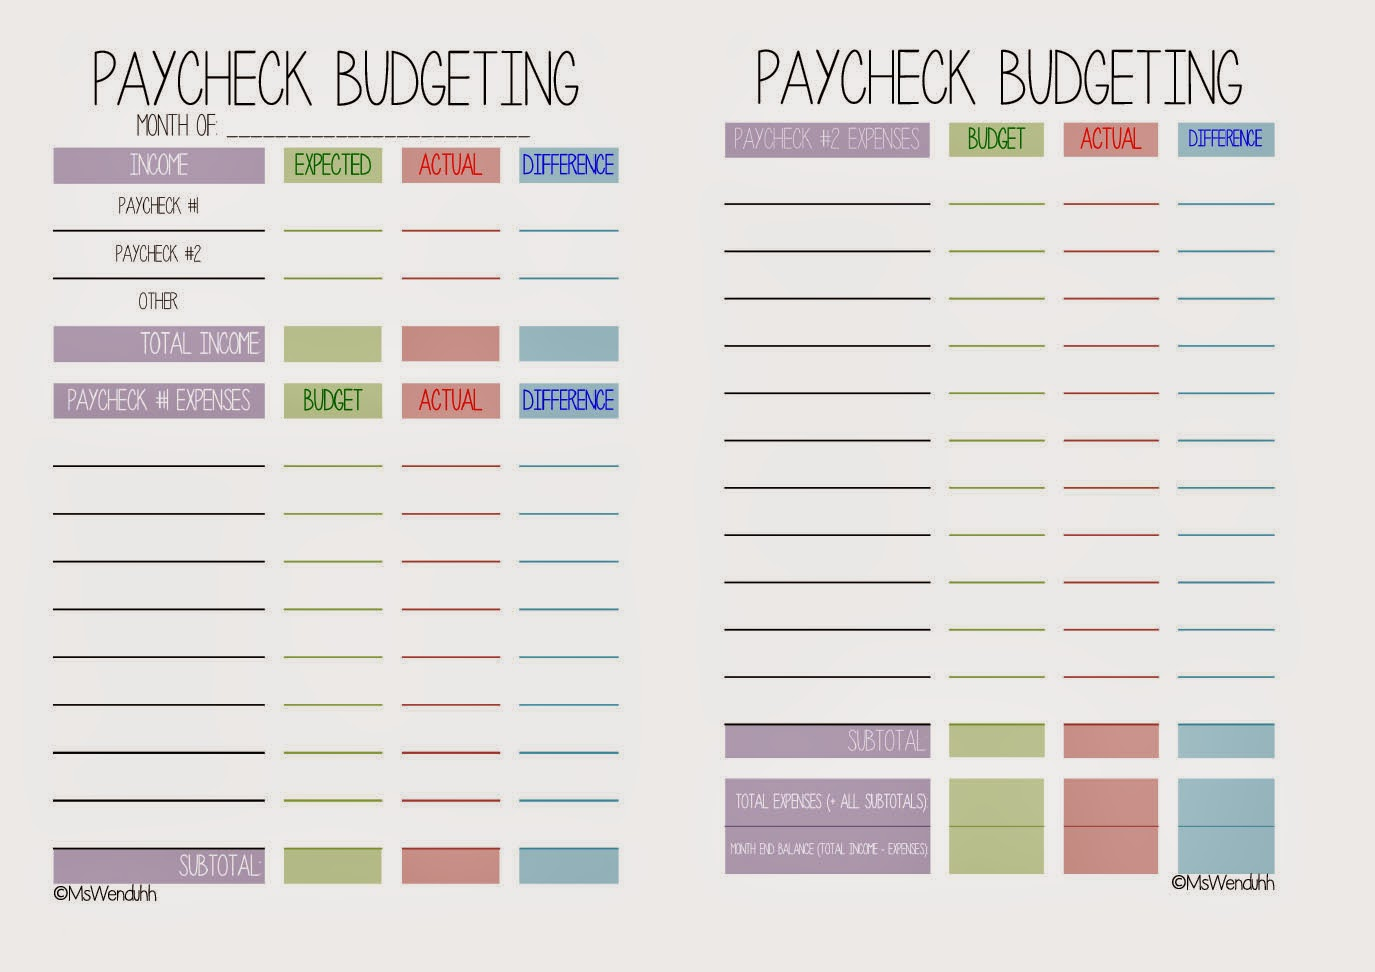 Template Paycheck To Paycheck Budget Spreadsheet